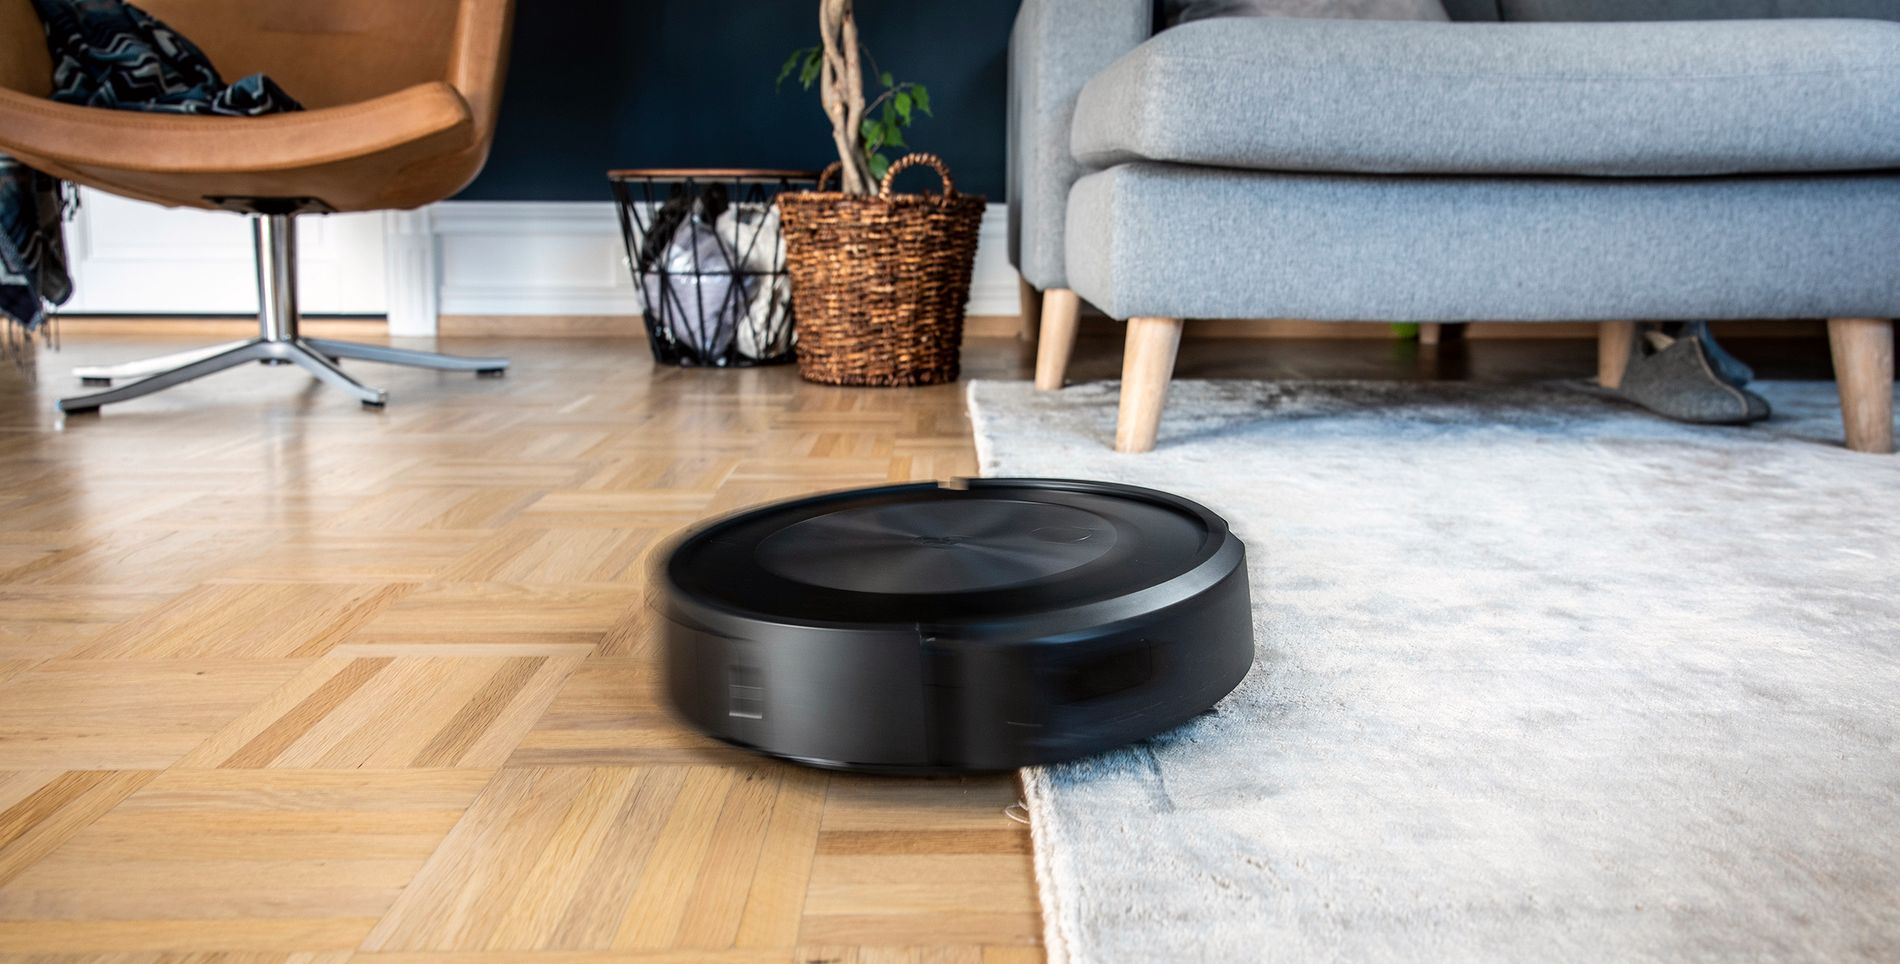 GETTING WHERE IT IS NEEDED: The robot vacuums rugs and crawls under the sofa.